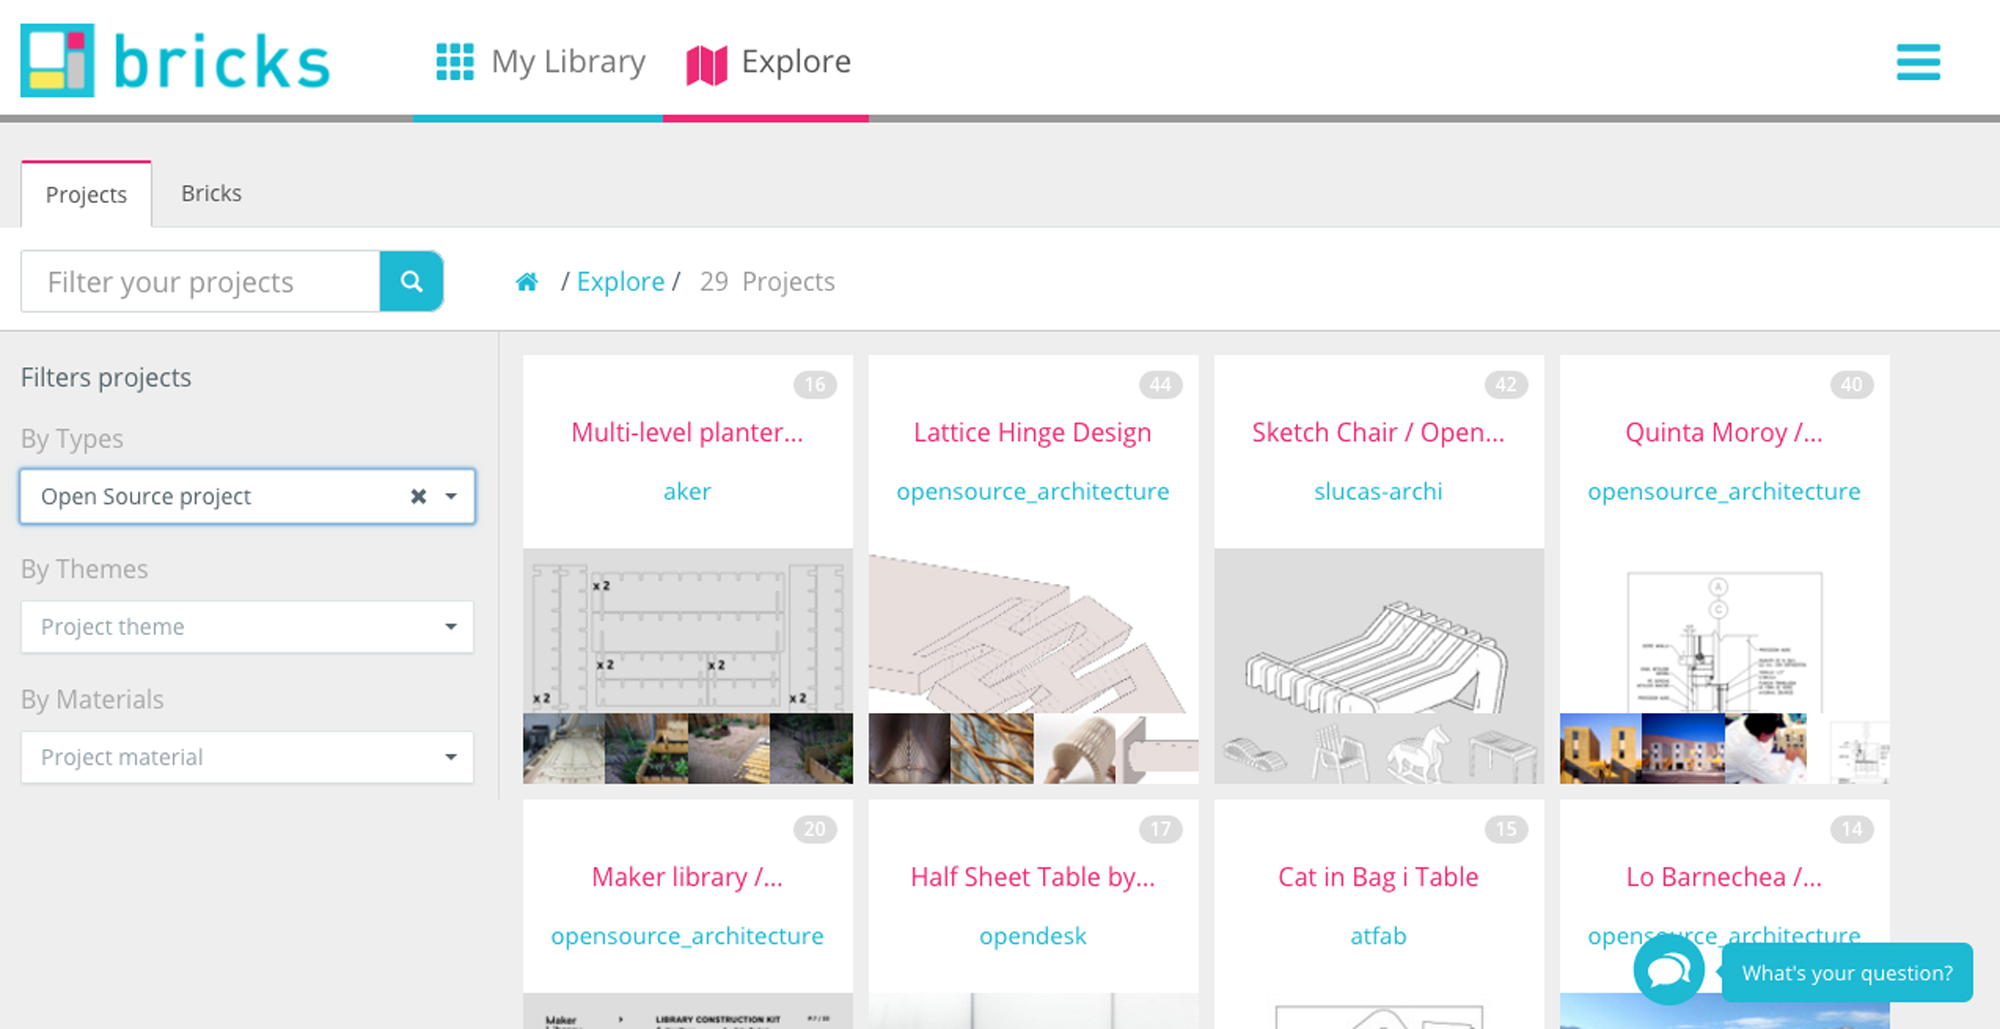 Openbricks, open source architectural library